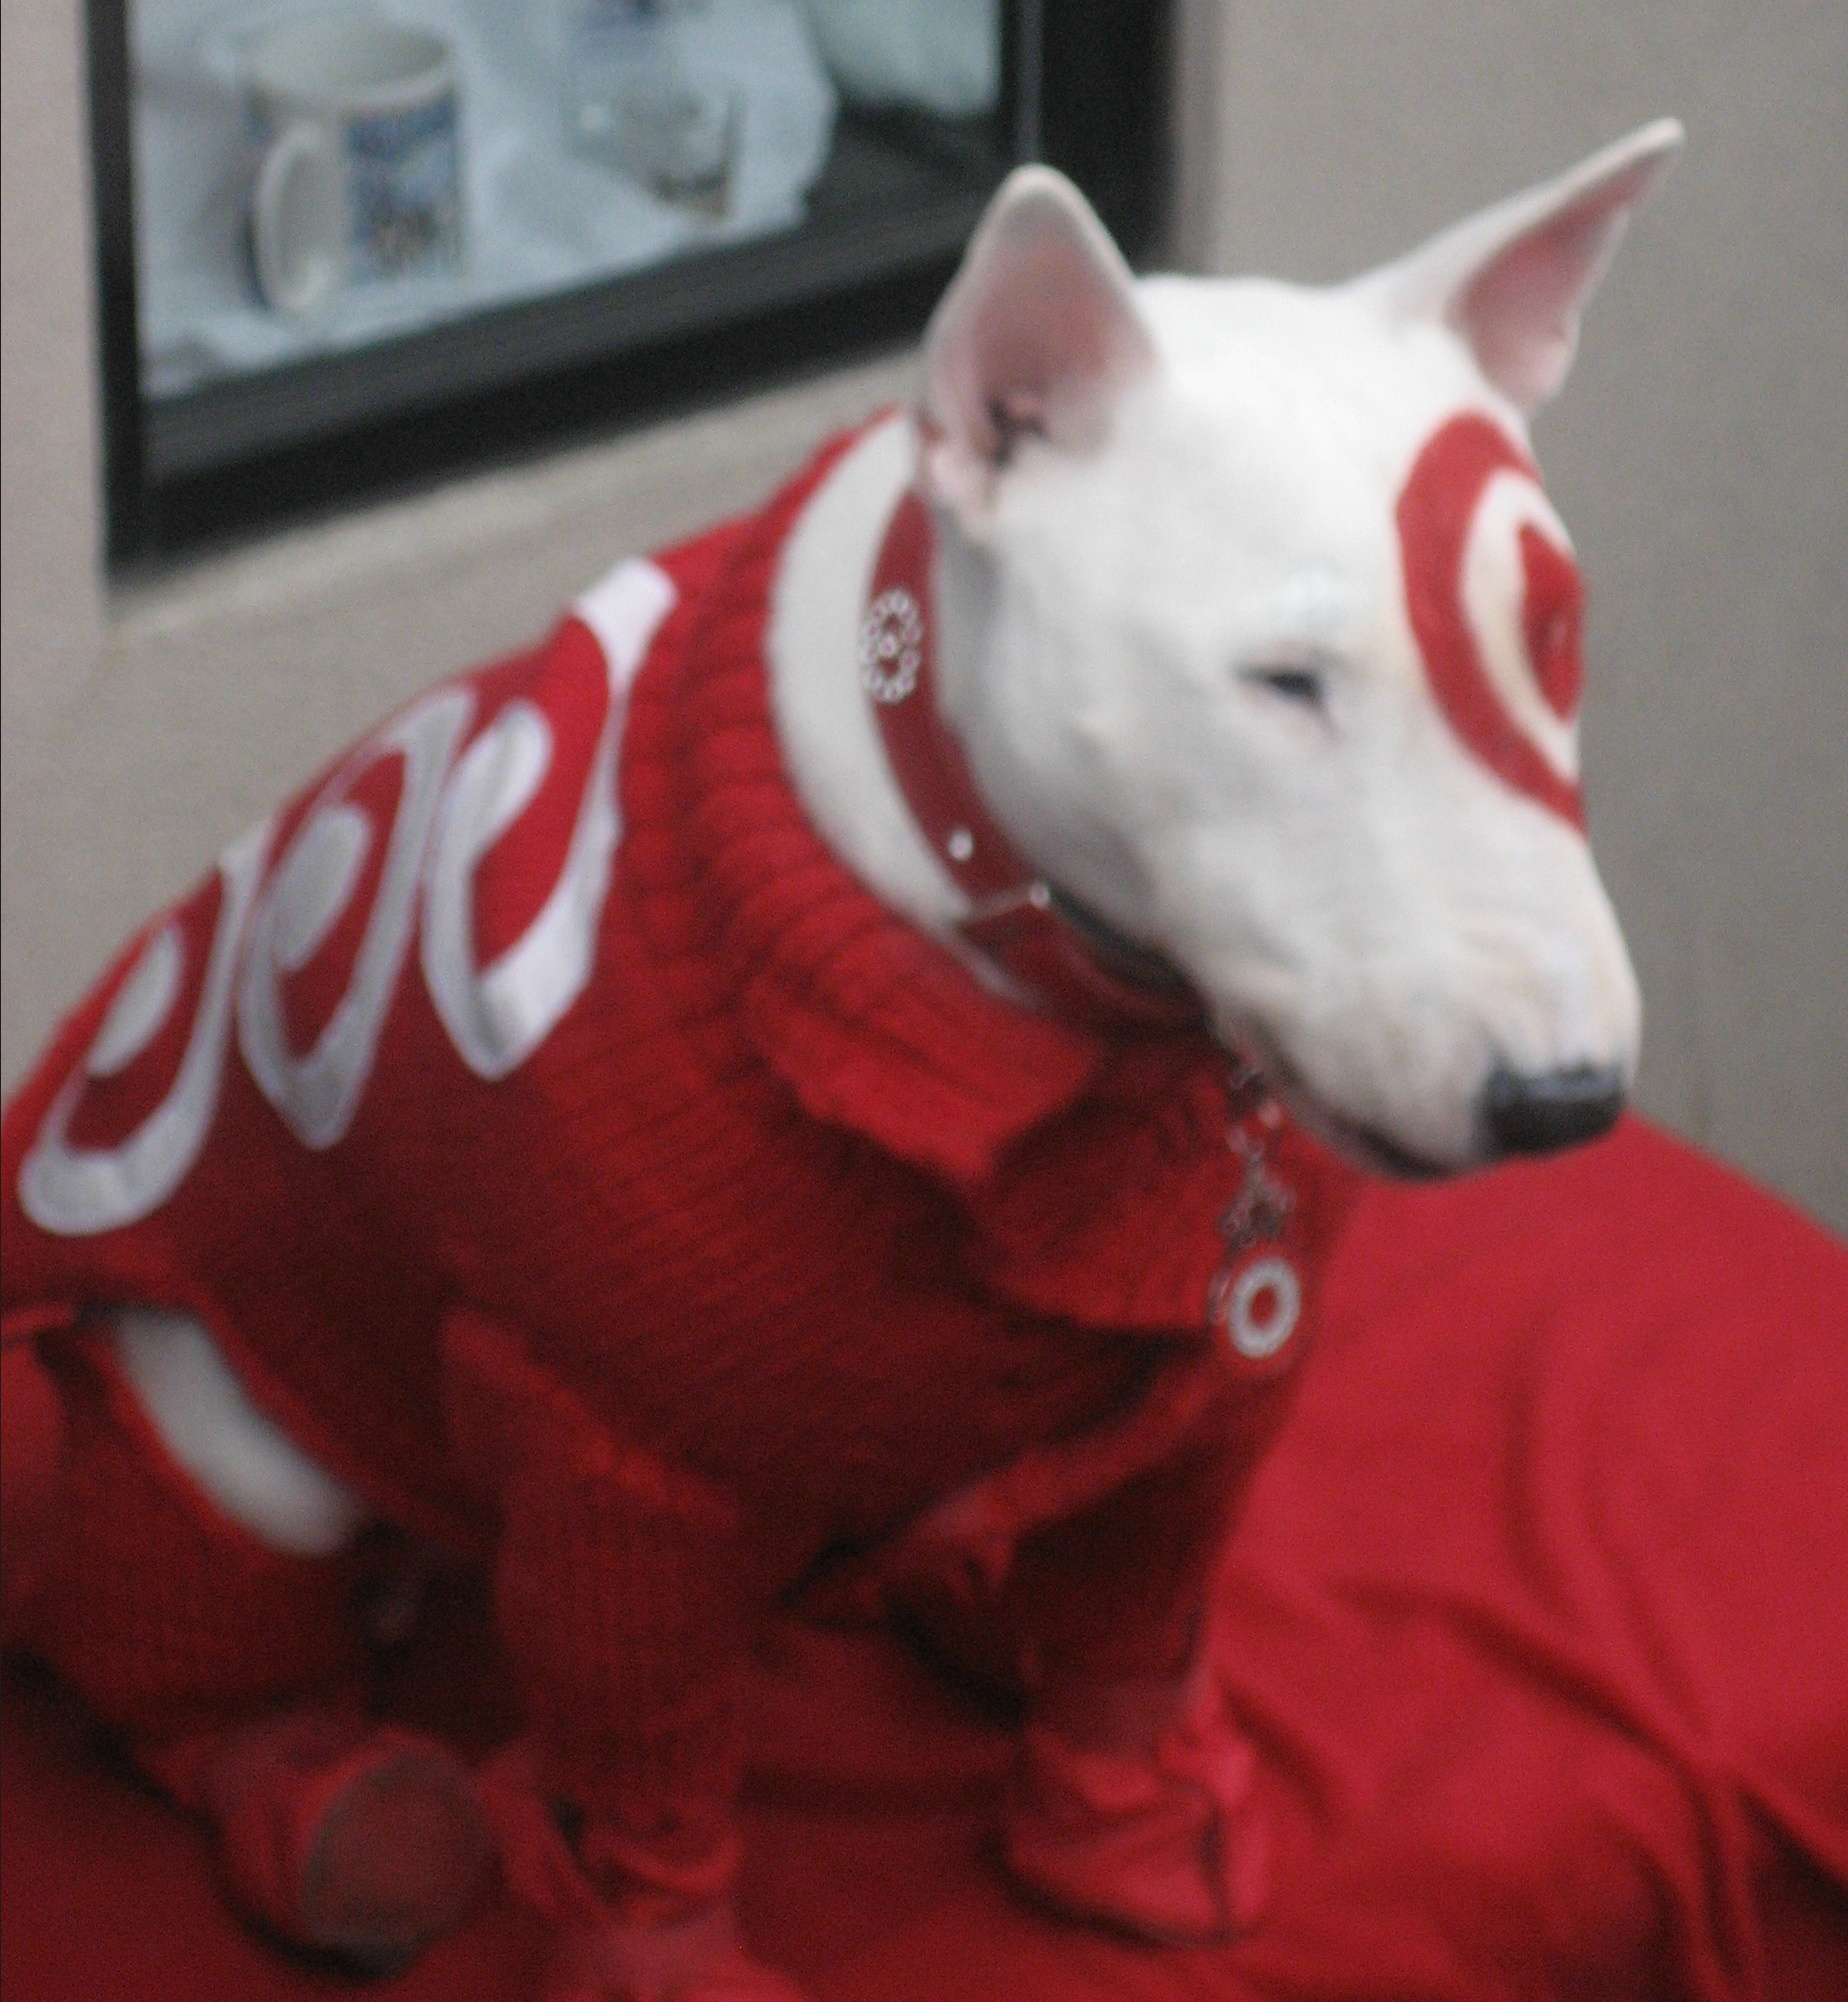 Description Target dog.jpg